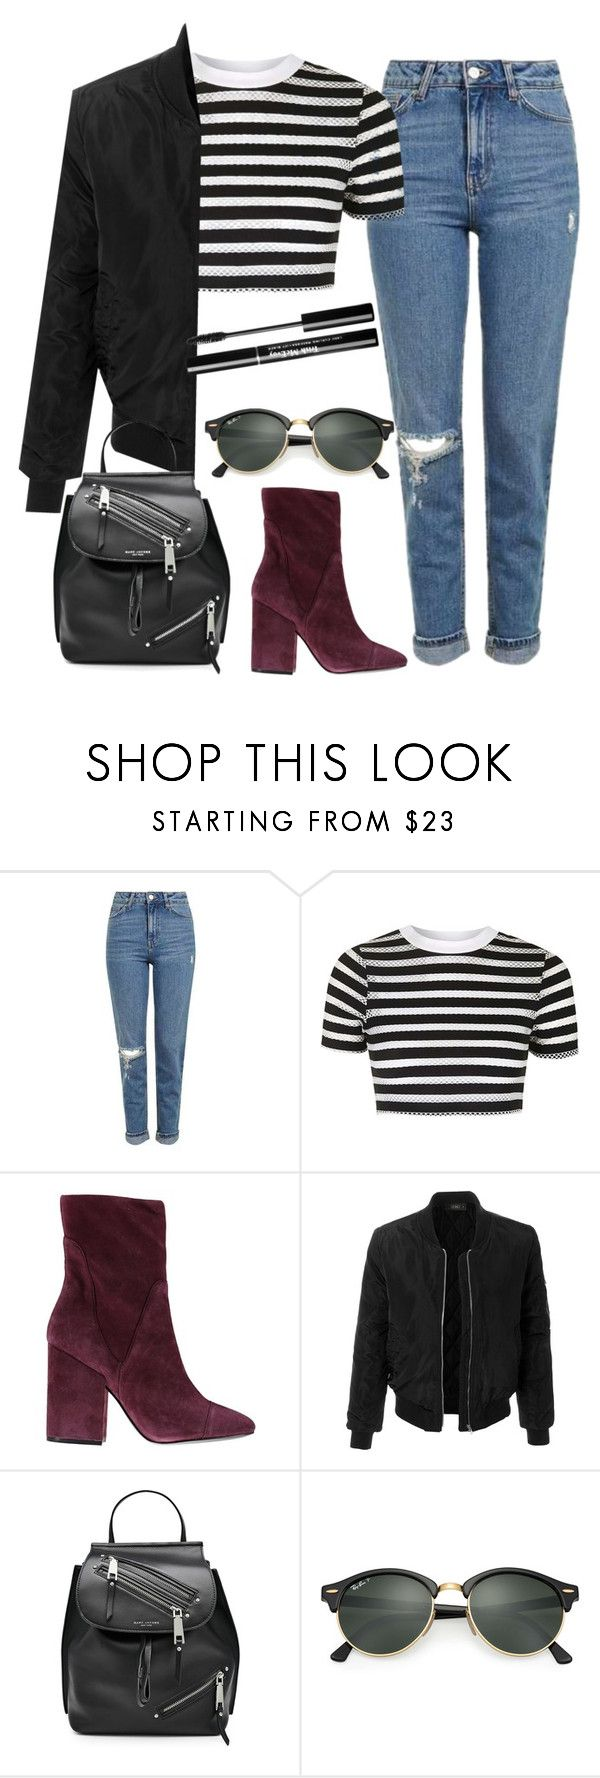 Untitled #44 by hynh on Polyvore featuring moda, Topshop, LE3NO, Kendall + Kylie, Marc Jacobs and Ray-Ban